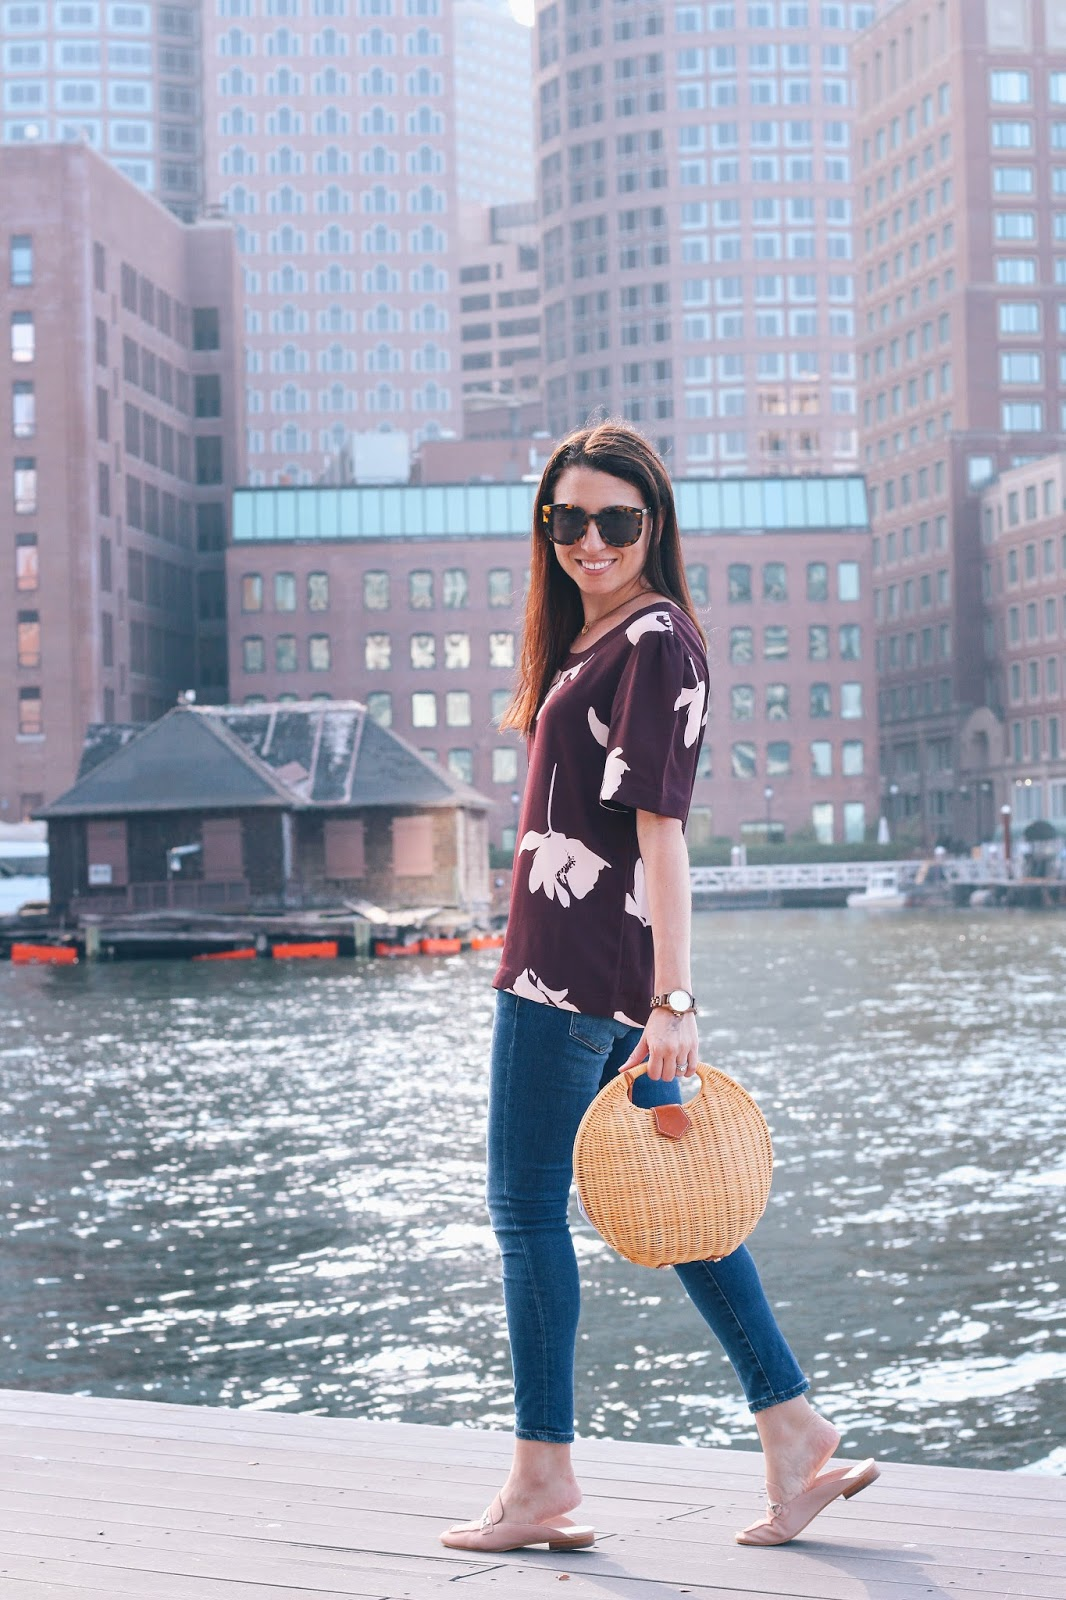 Boston Life & Style Blogger, The Northern Magnolia, is sharing her favorite finds from the Nordstrom Summer Sale.